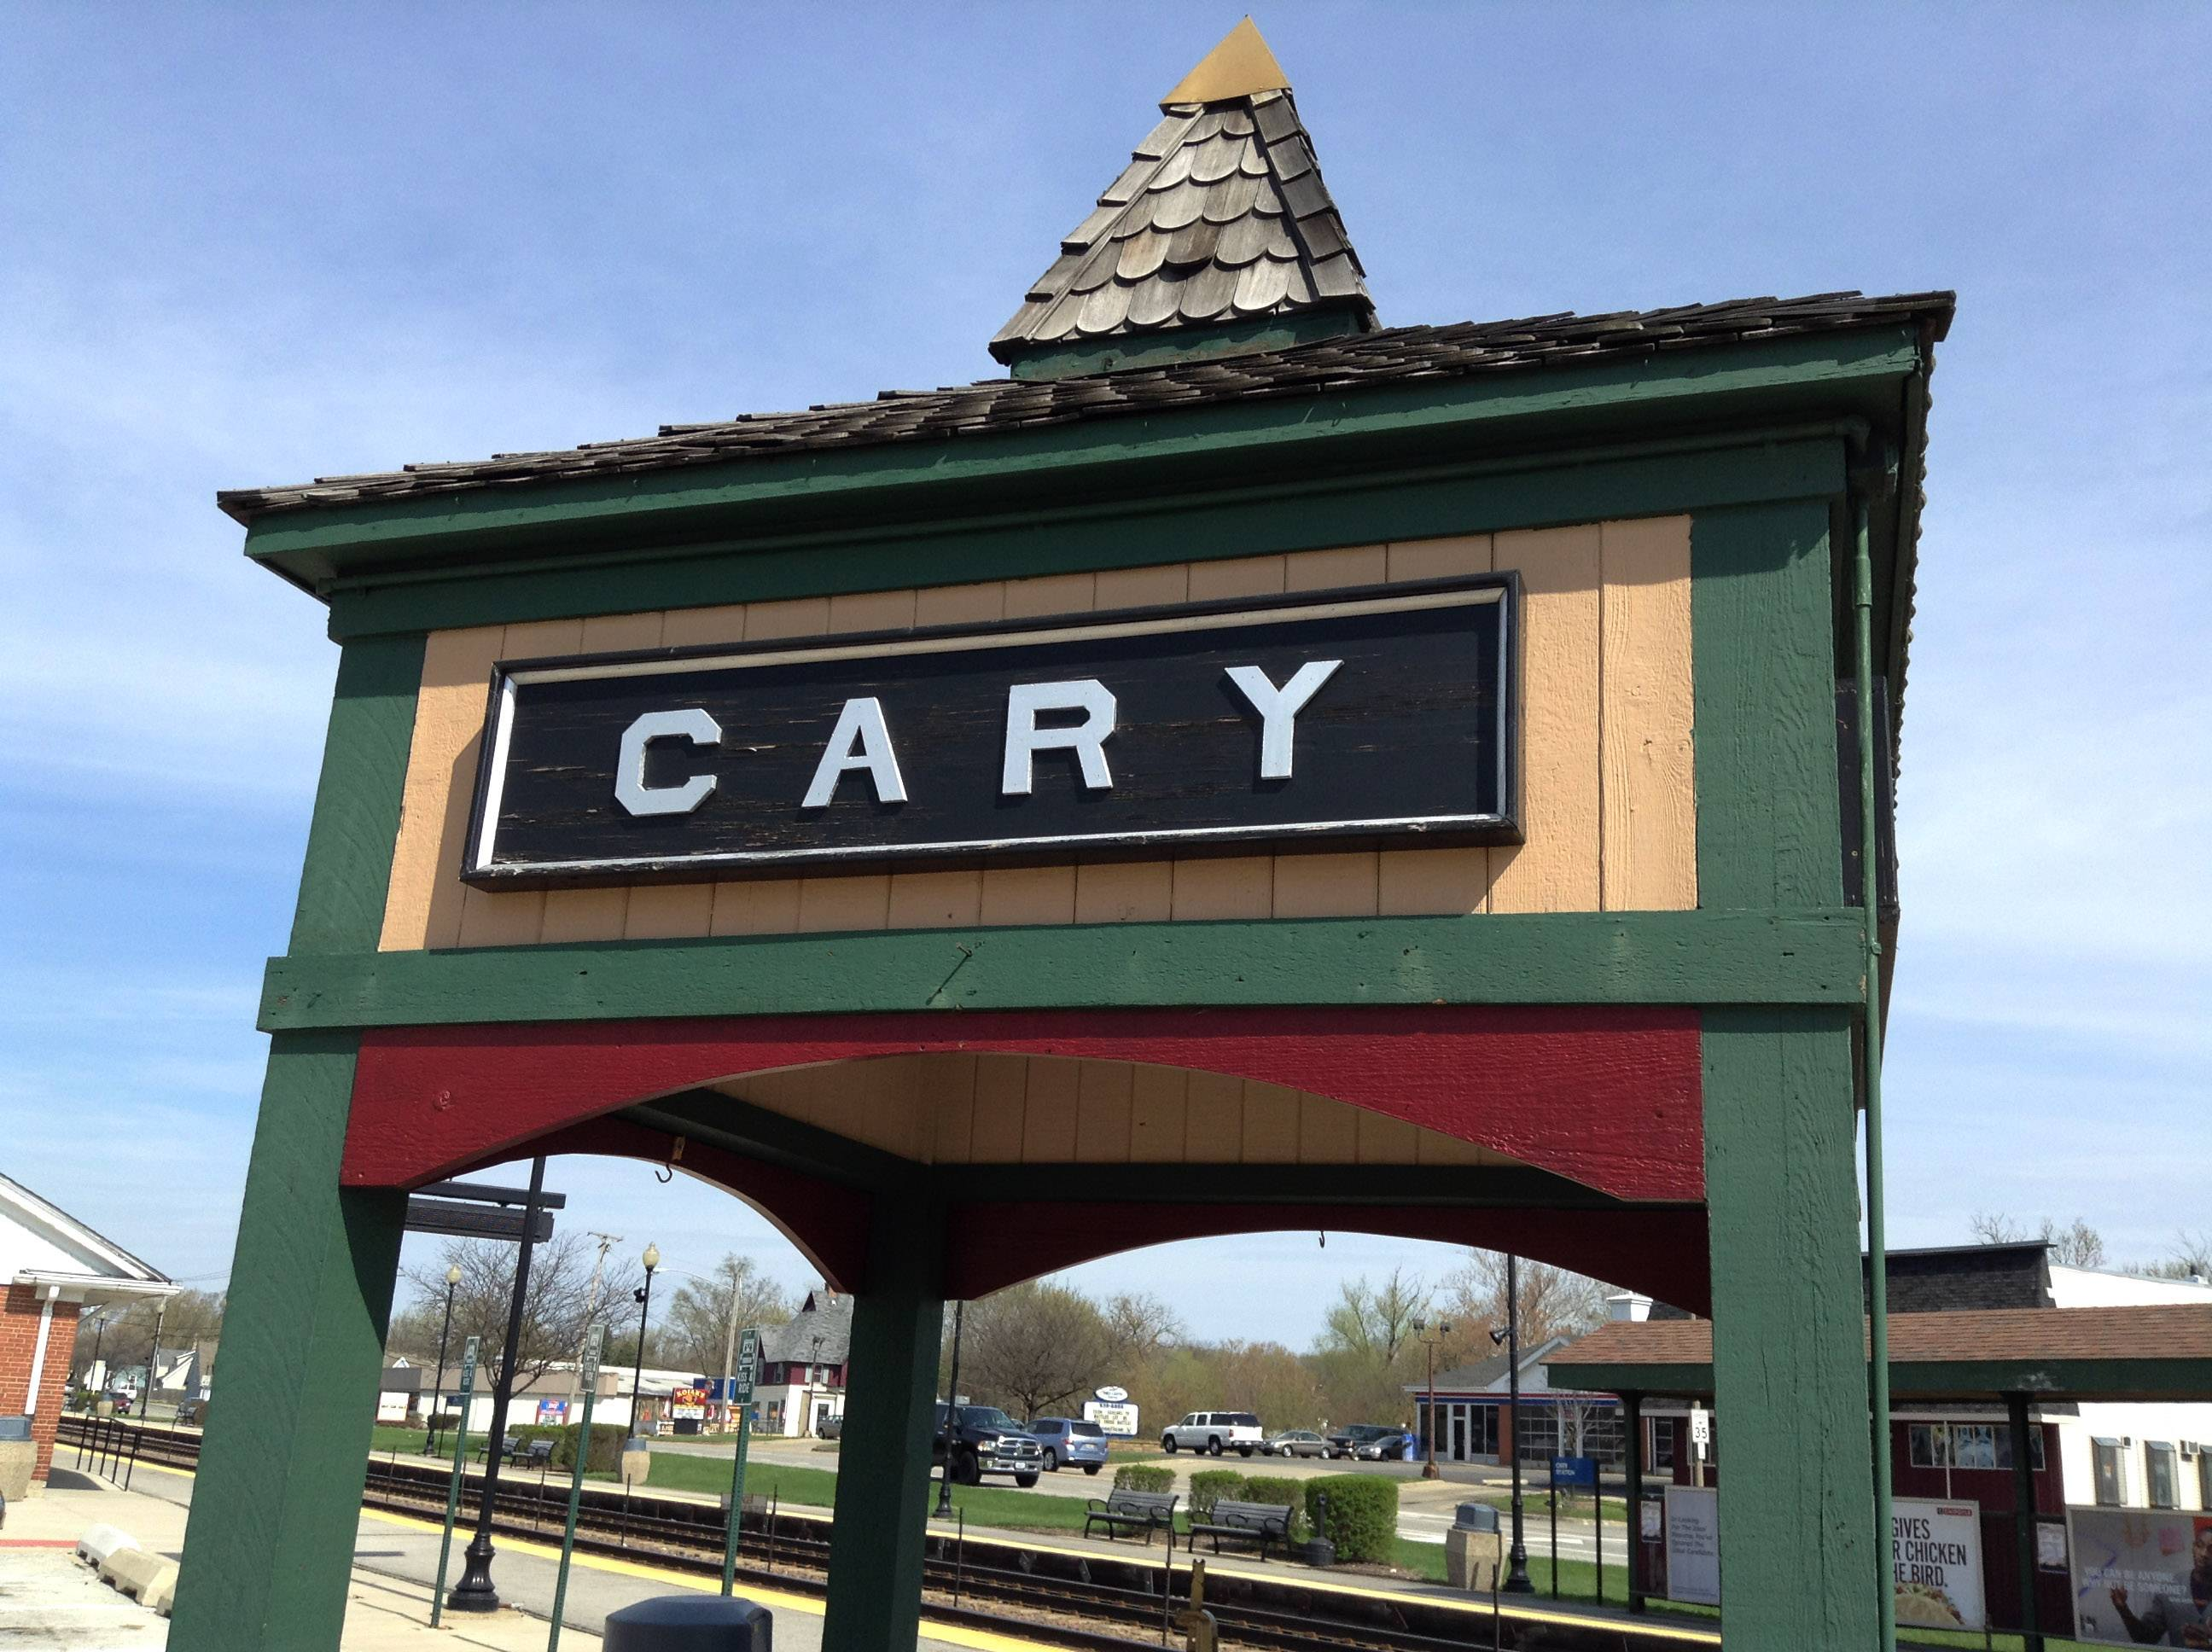 Roughly 18,000 people live in Cary, which sits along the Fox River in McHenry County. It was founded in 1841 when William Dennison Cary purchased 82 acres at the location of the current town and built a farm.